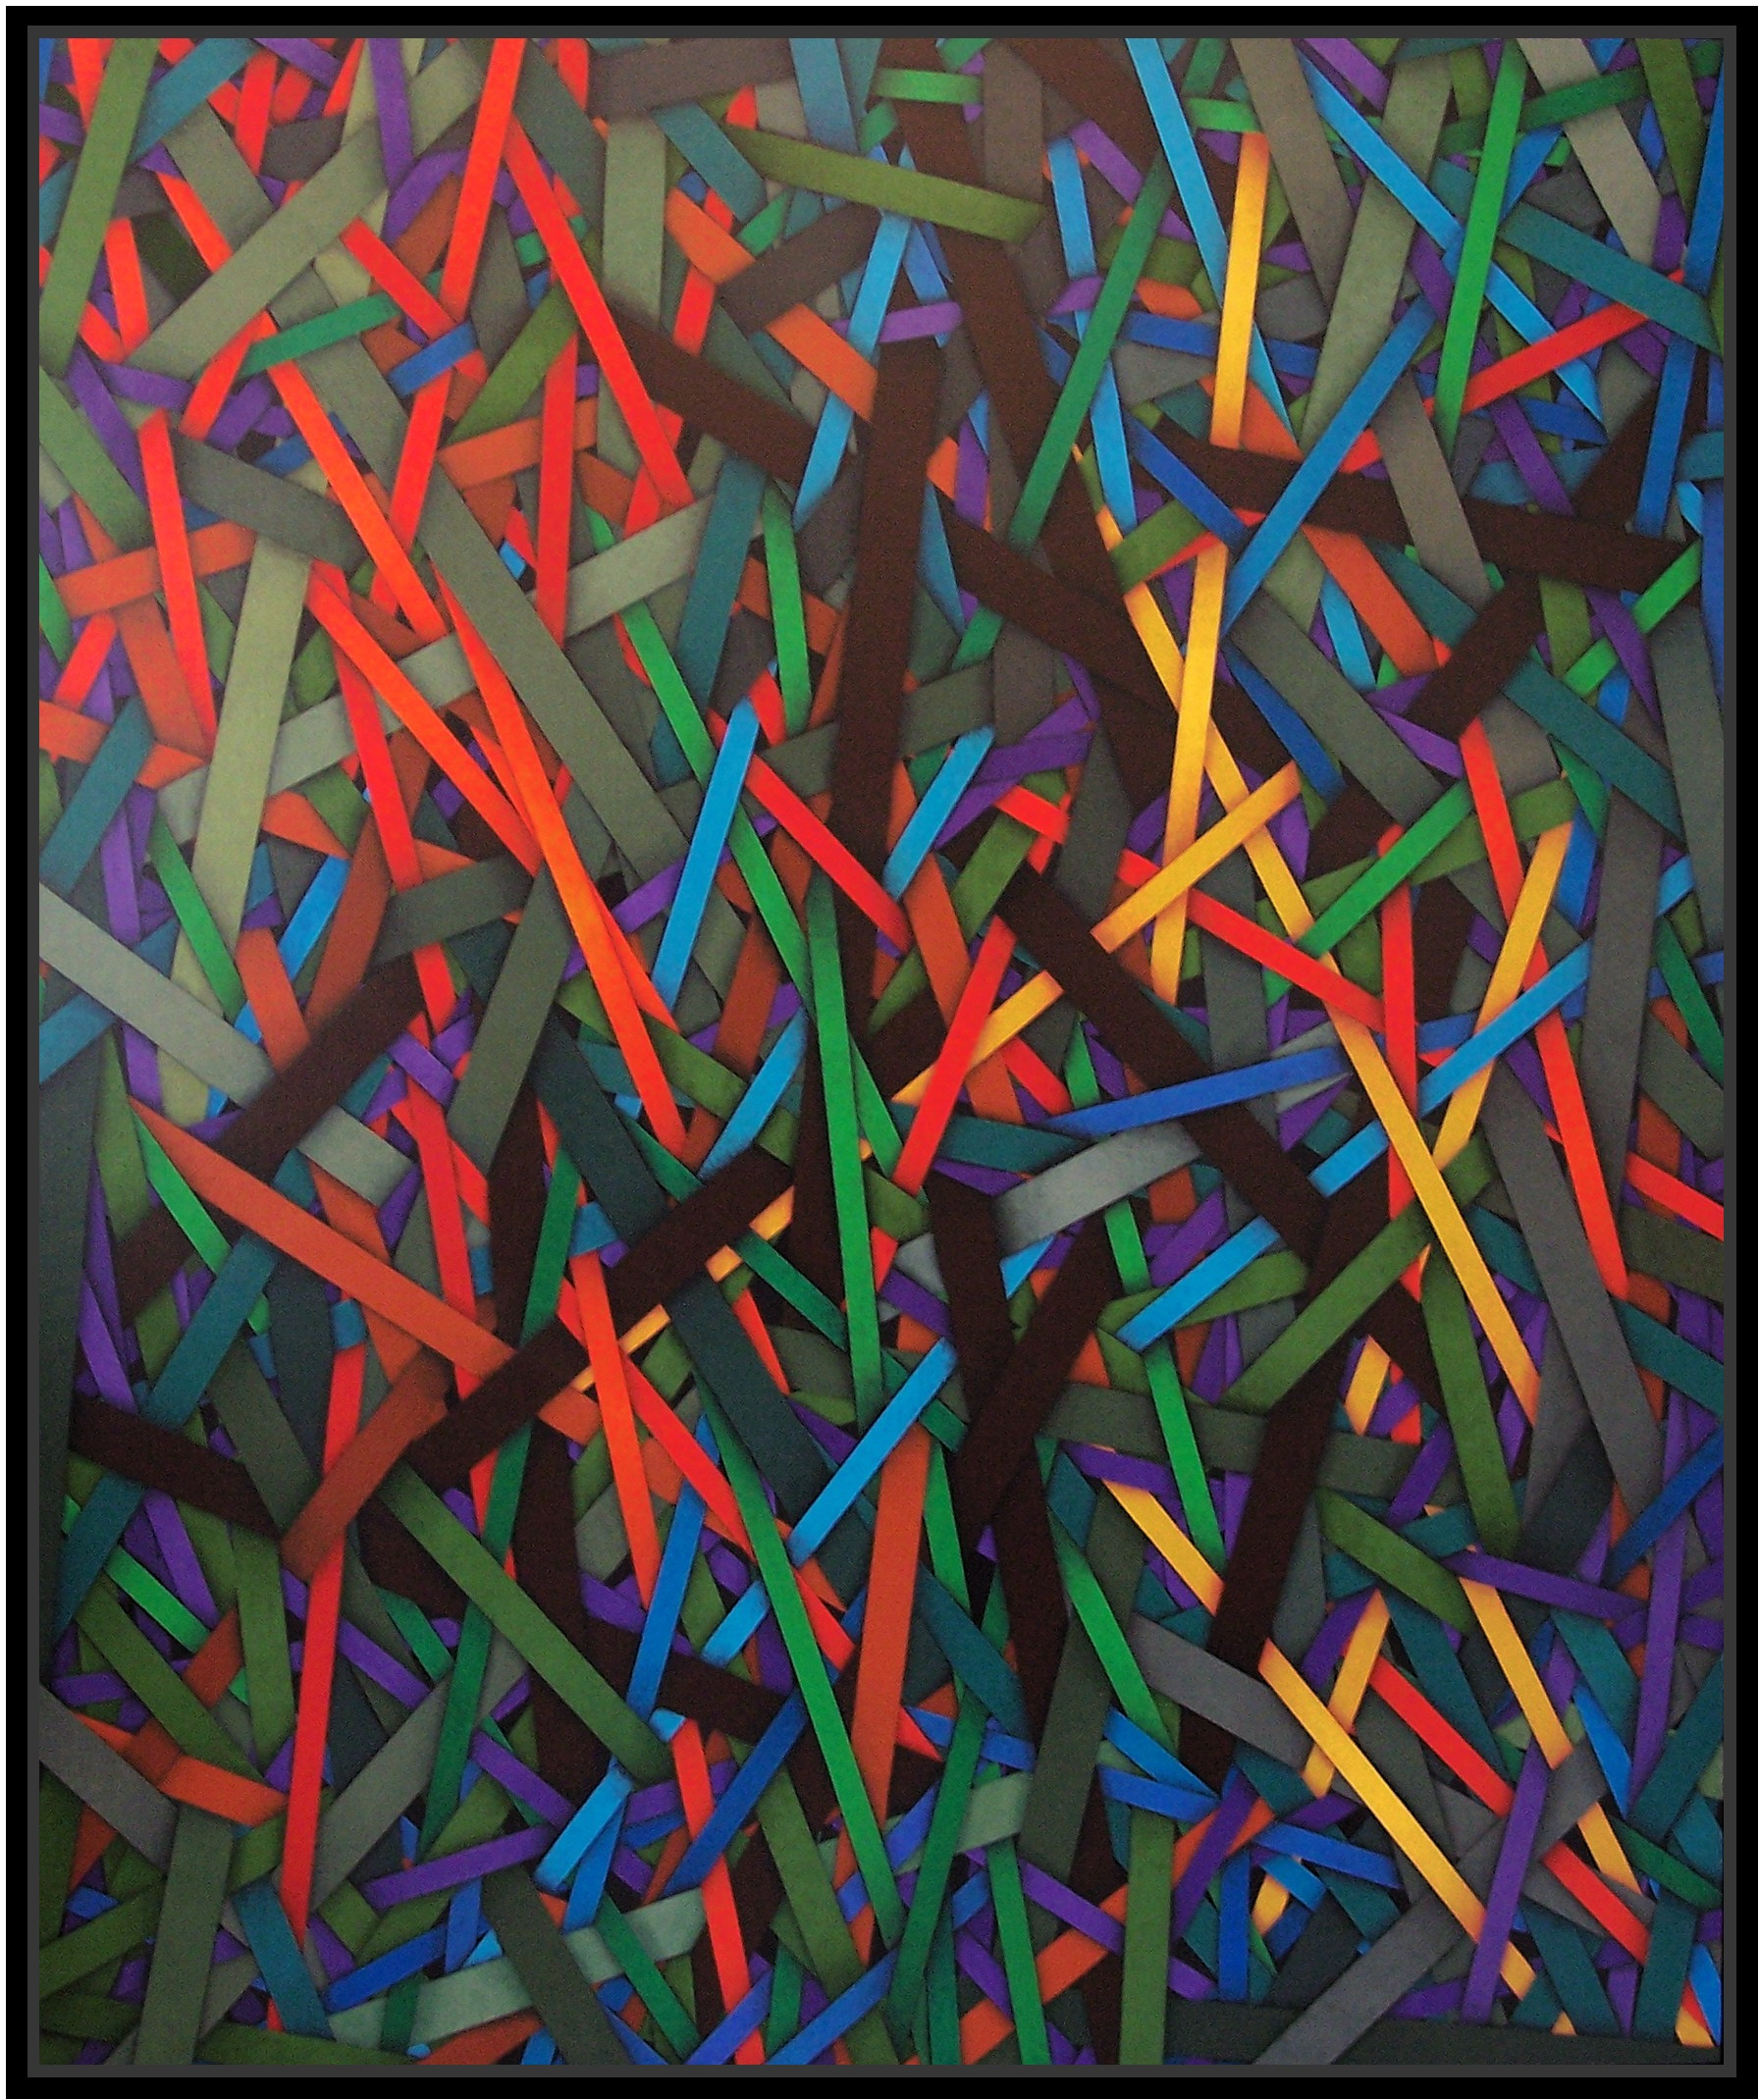 2011, barricade, cm 150x180, acrylic on canvas